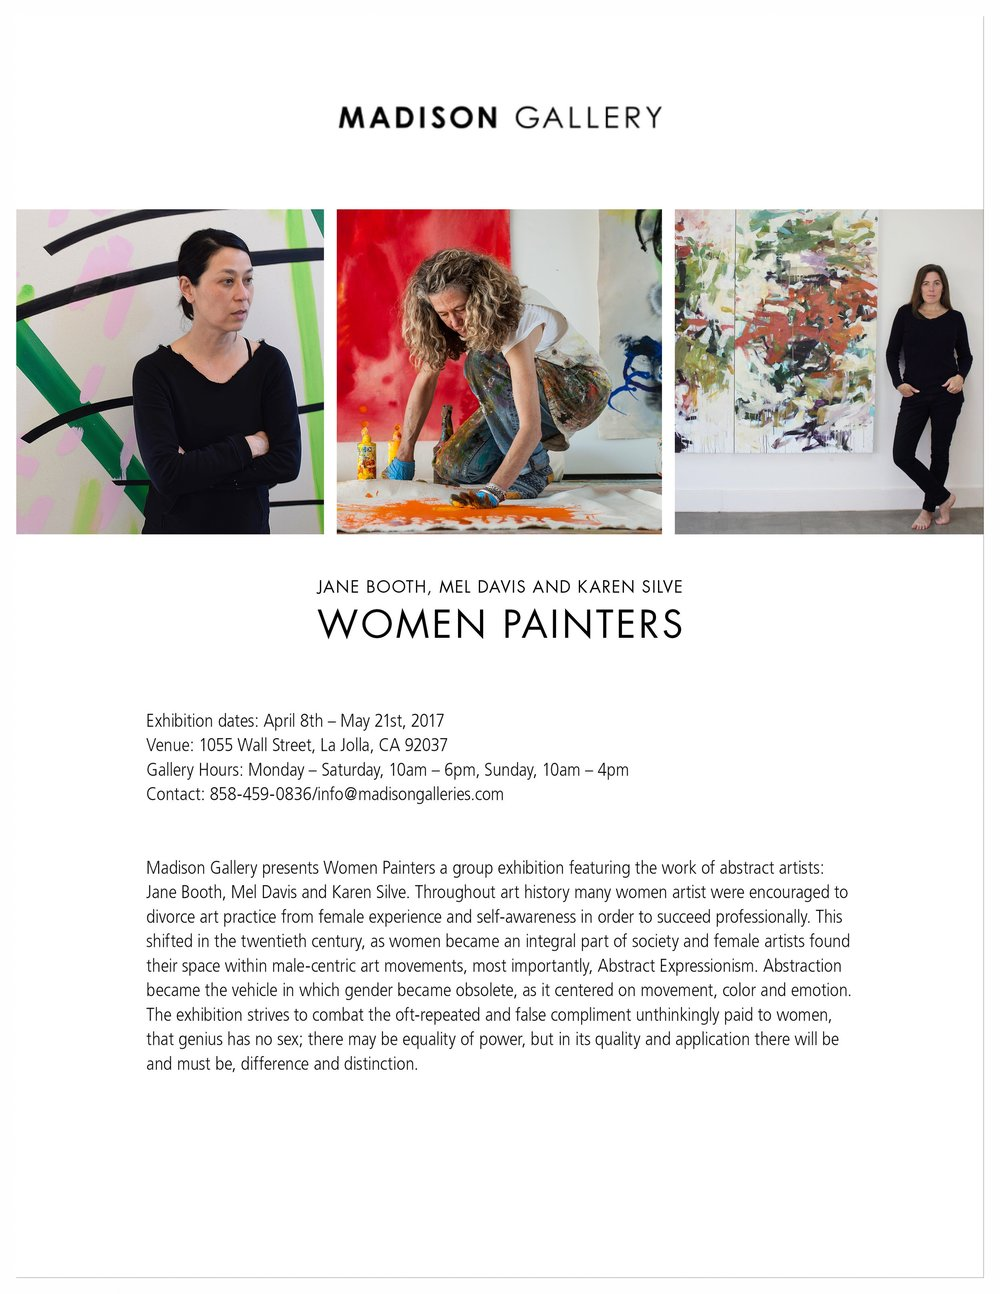 — Press Release: Women Painters, April/May 2017